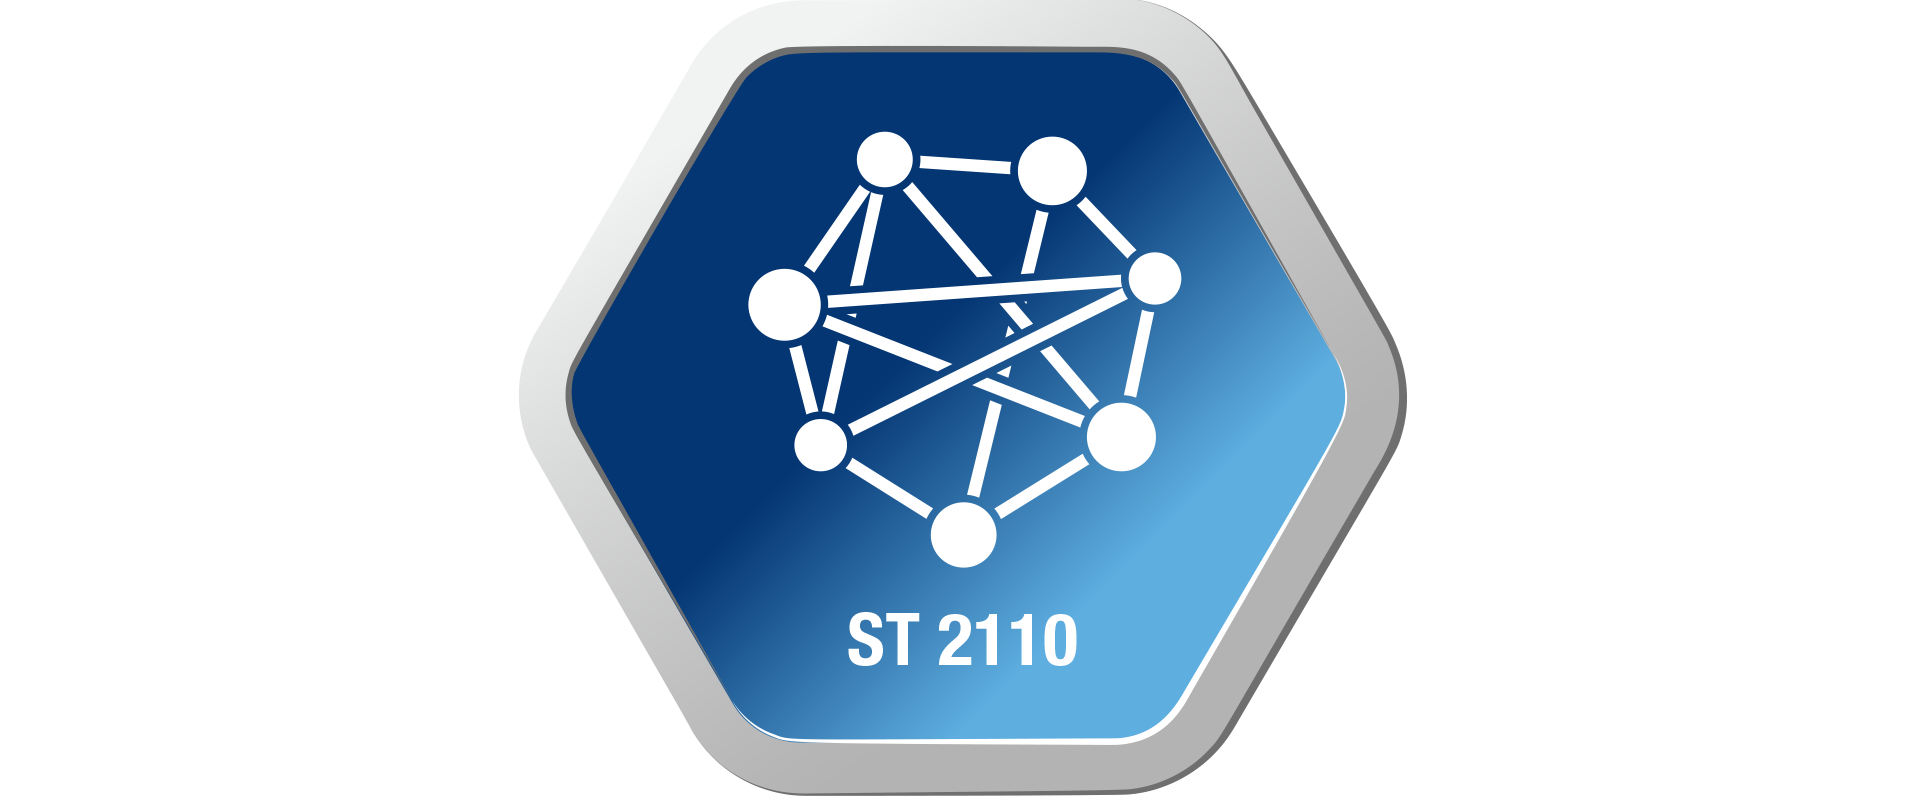 DSK SDK ST2110 Icon